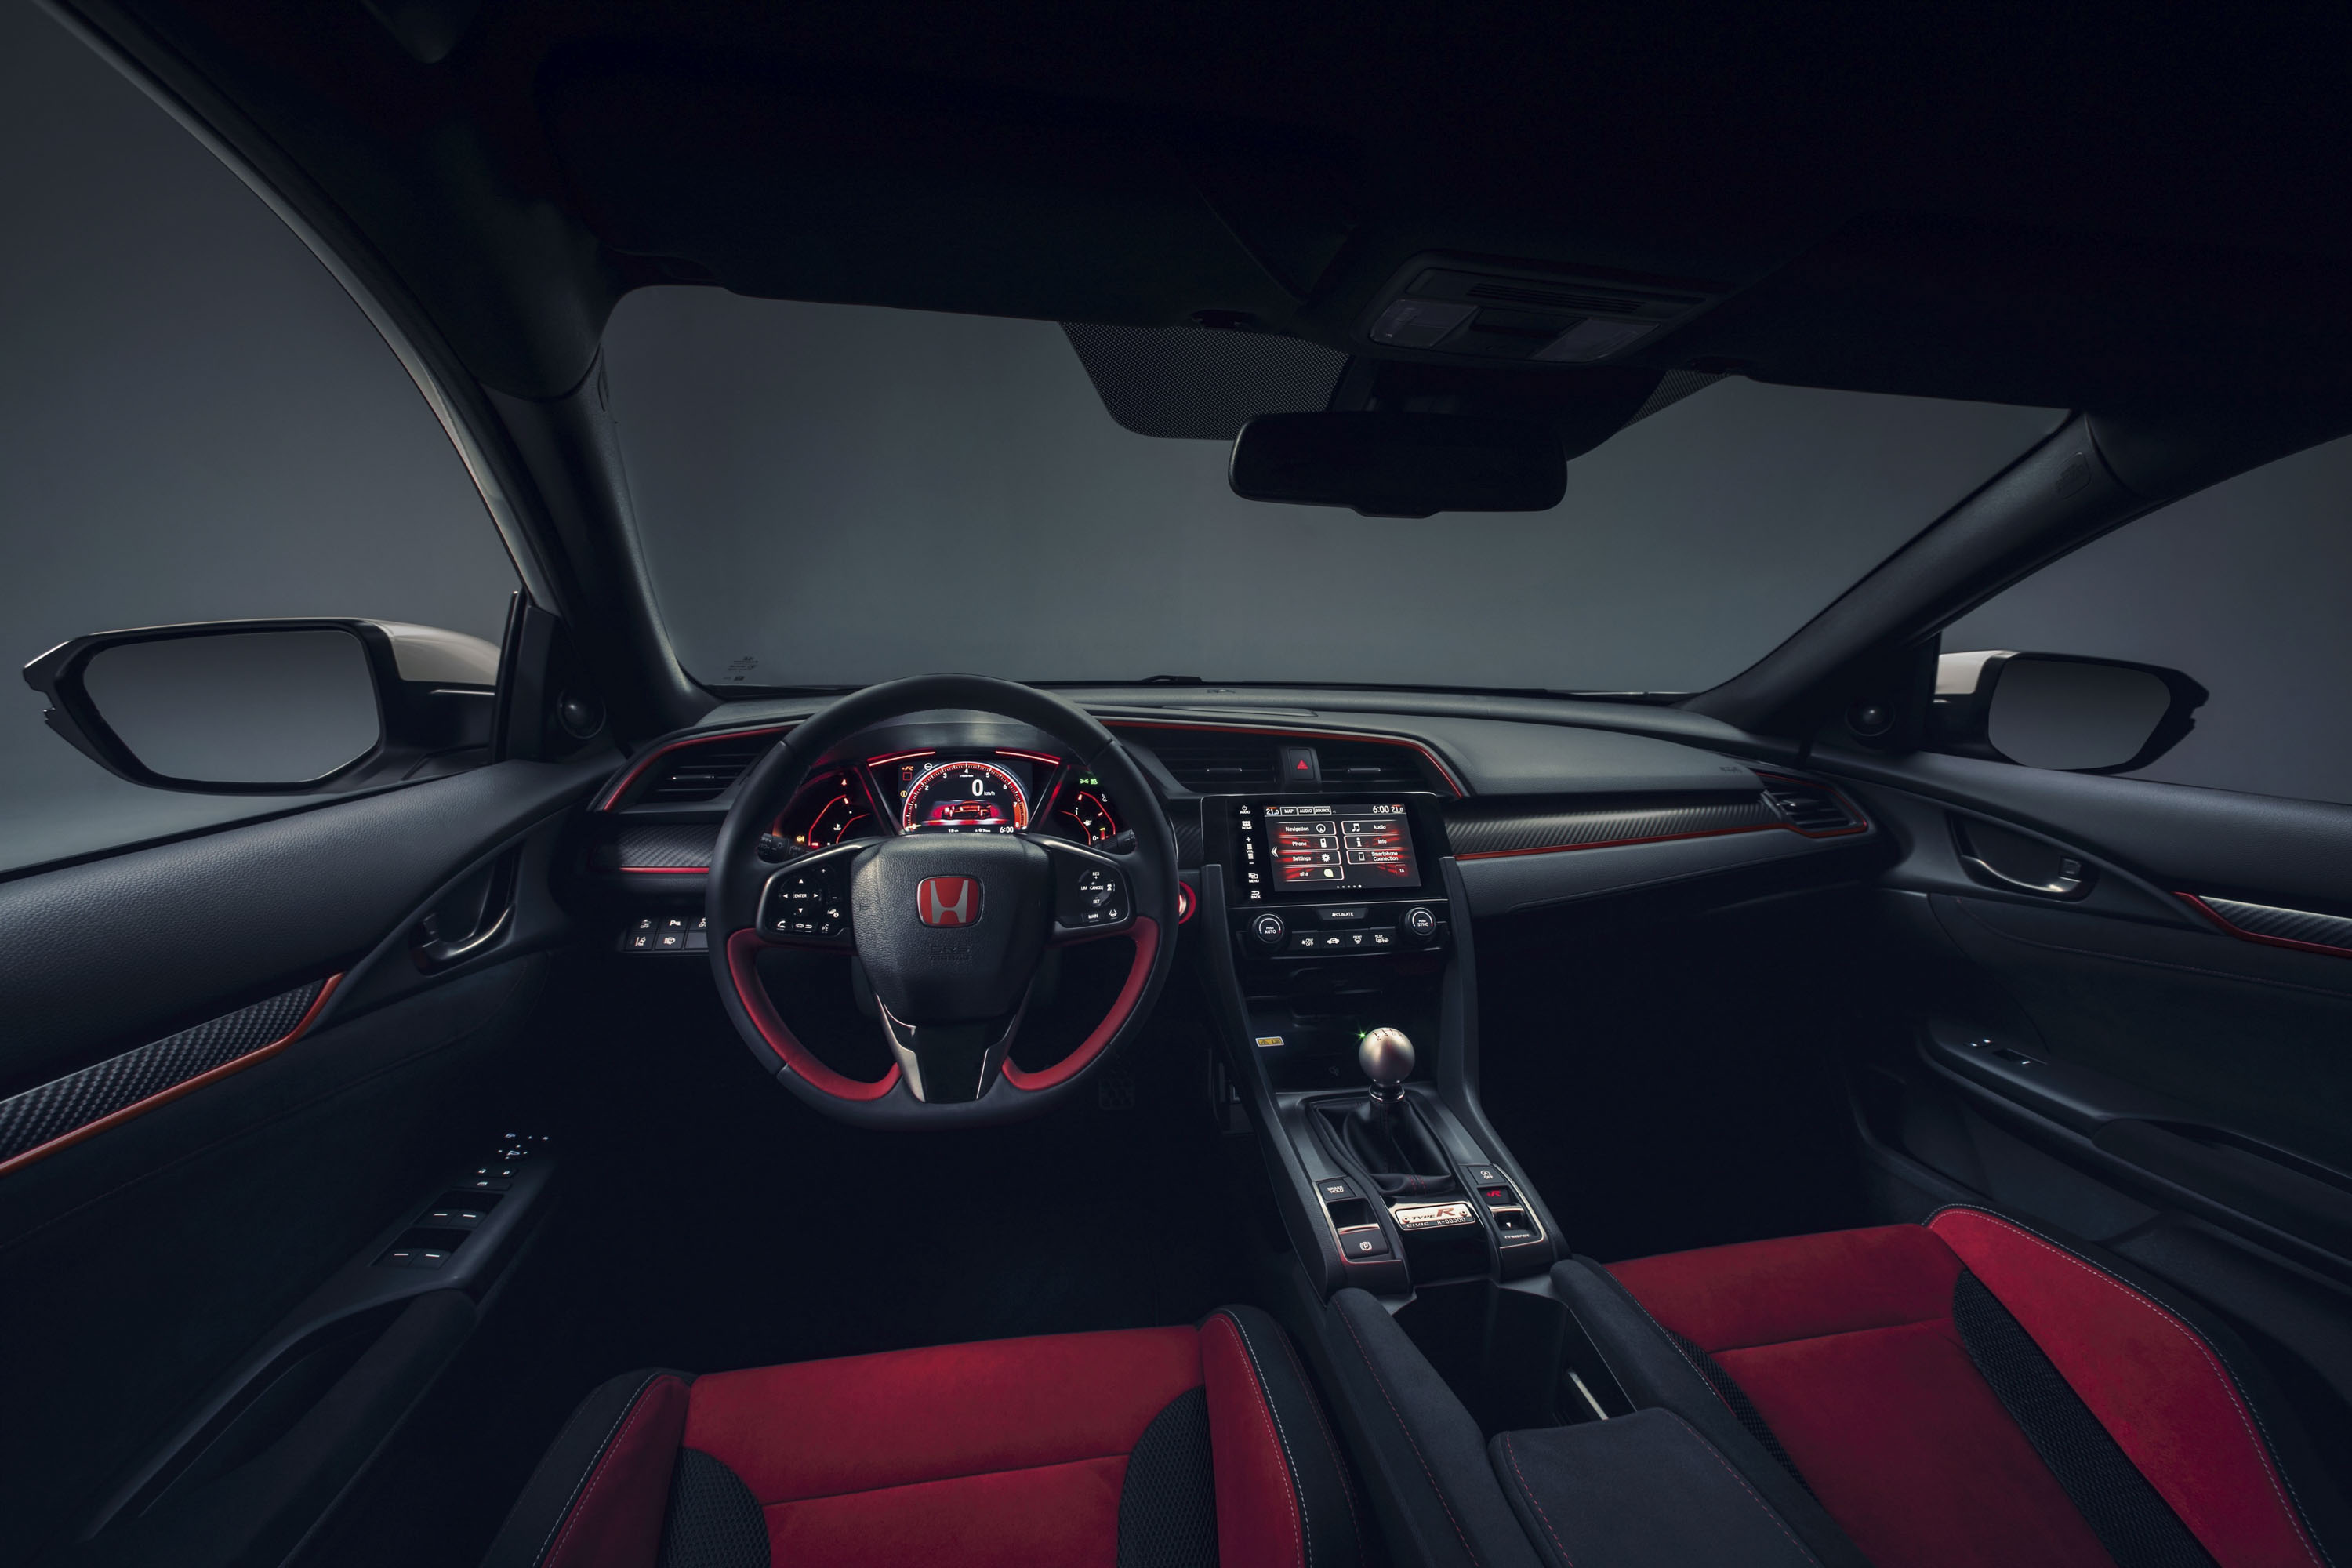 Hot Hatch Shakedown Honda Civic Type R Vs Ford Focus Rs Top Speed 1970 Accord Interior